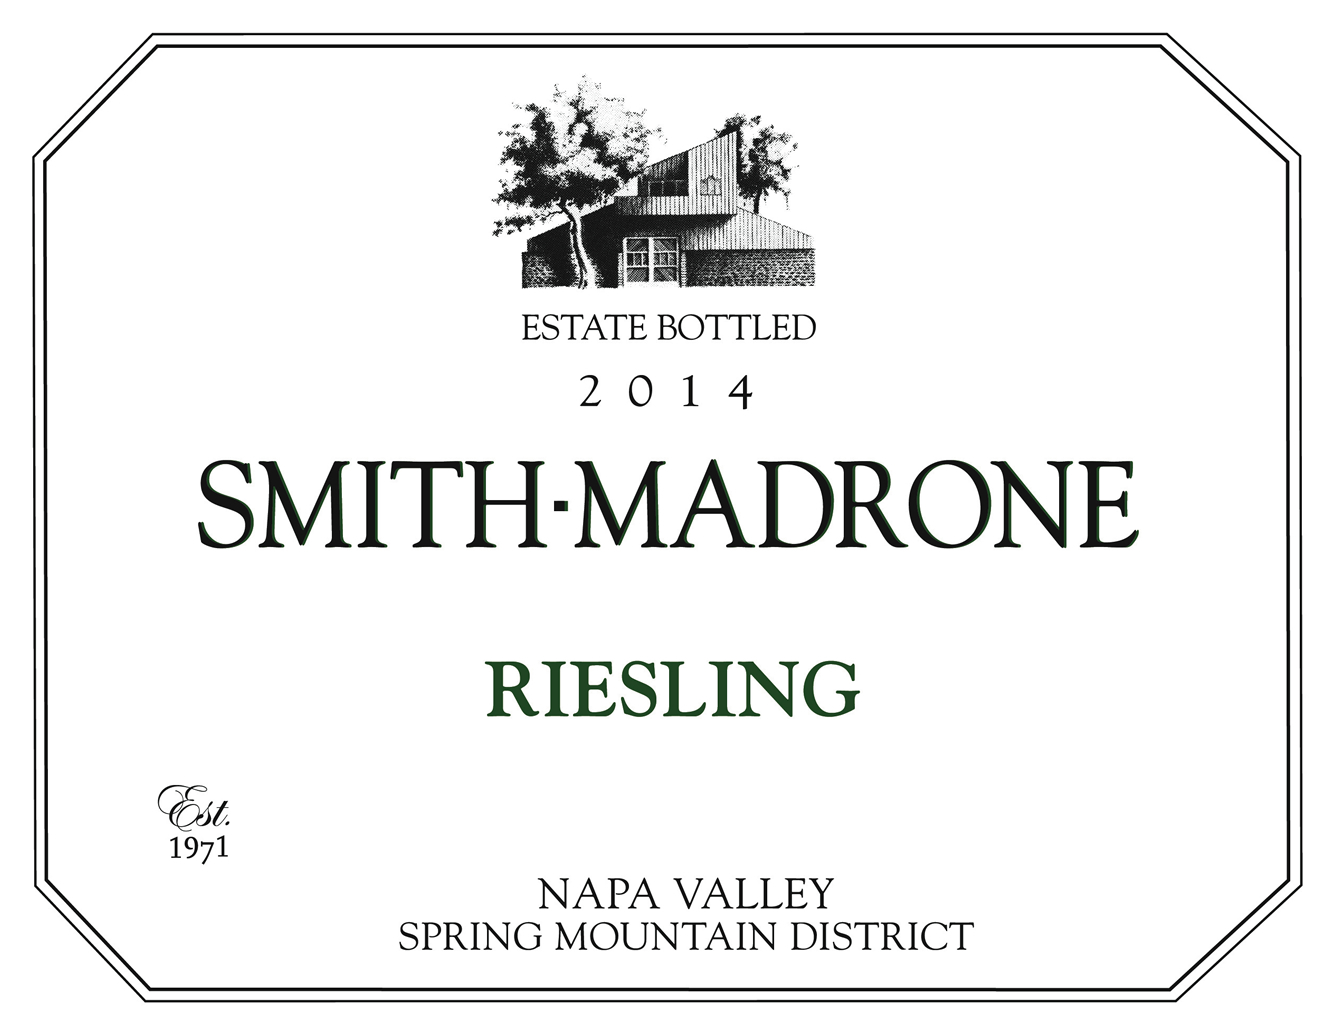 Smith-Madrone Riesling Estate